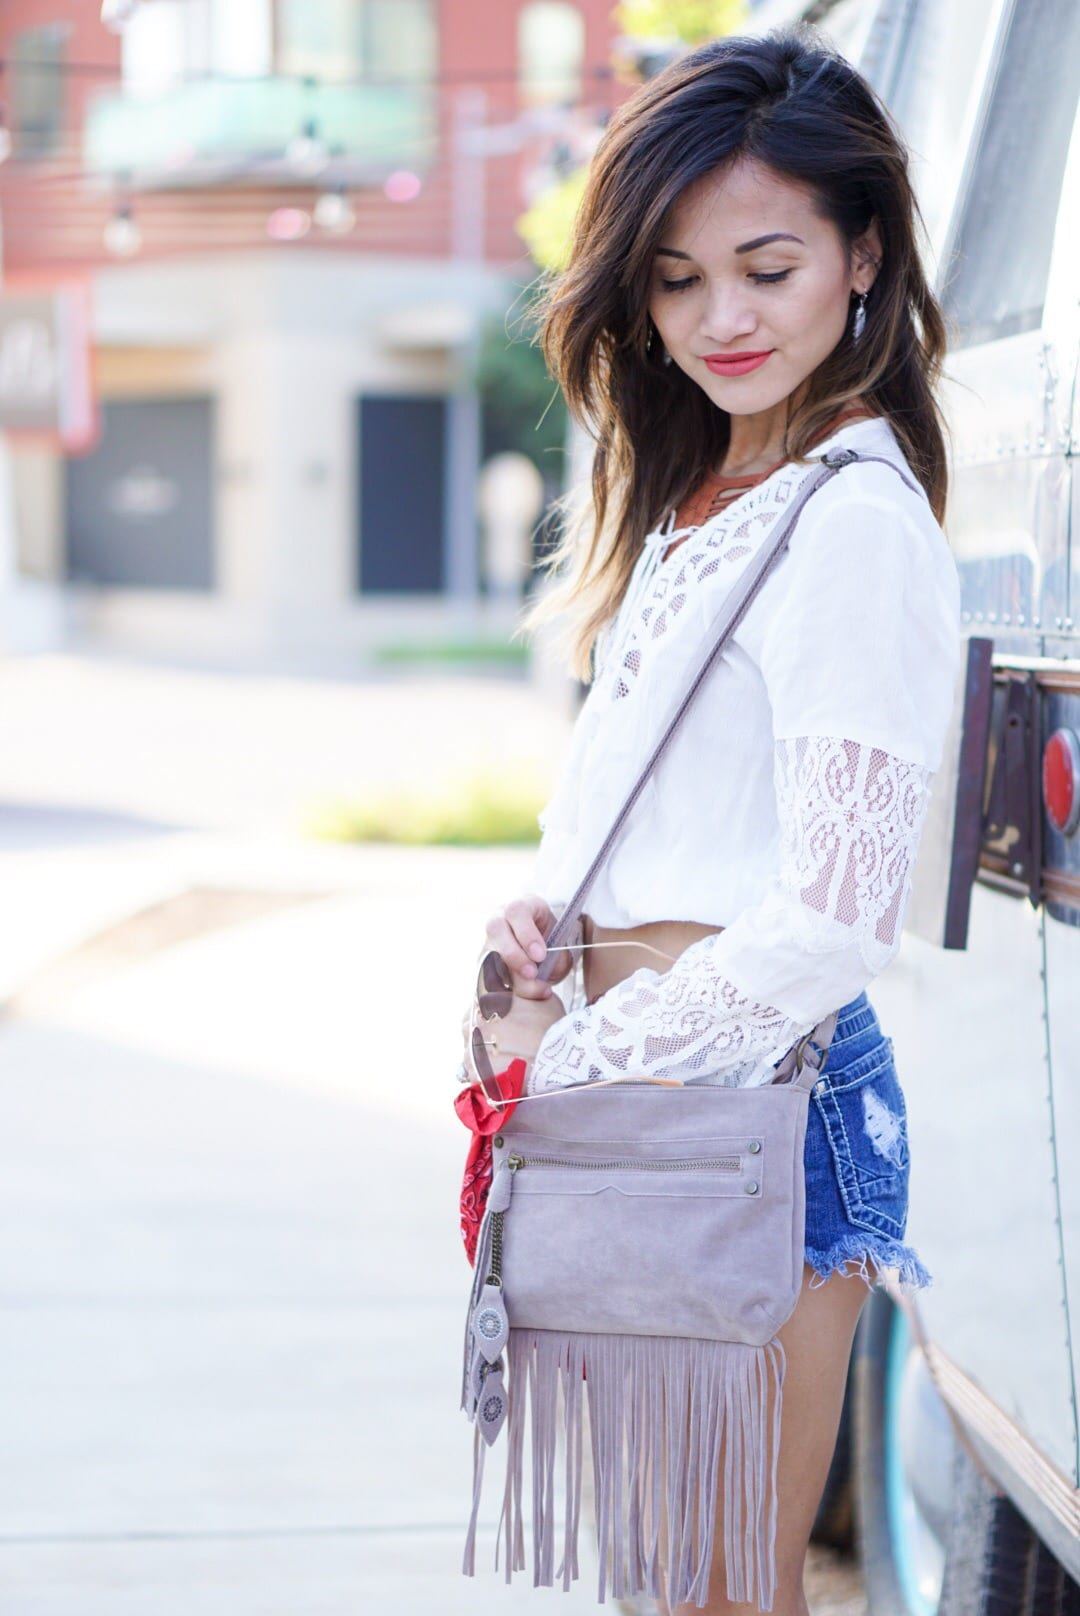 Boho Chic - Lace ups and Bralettes